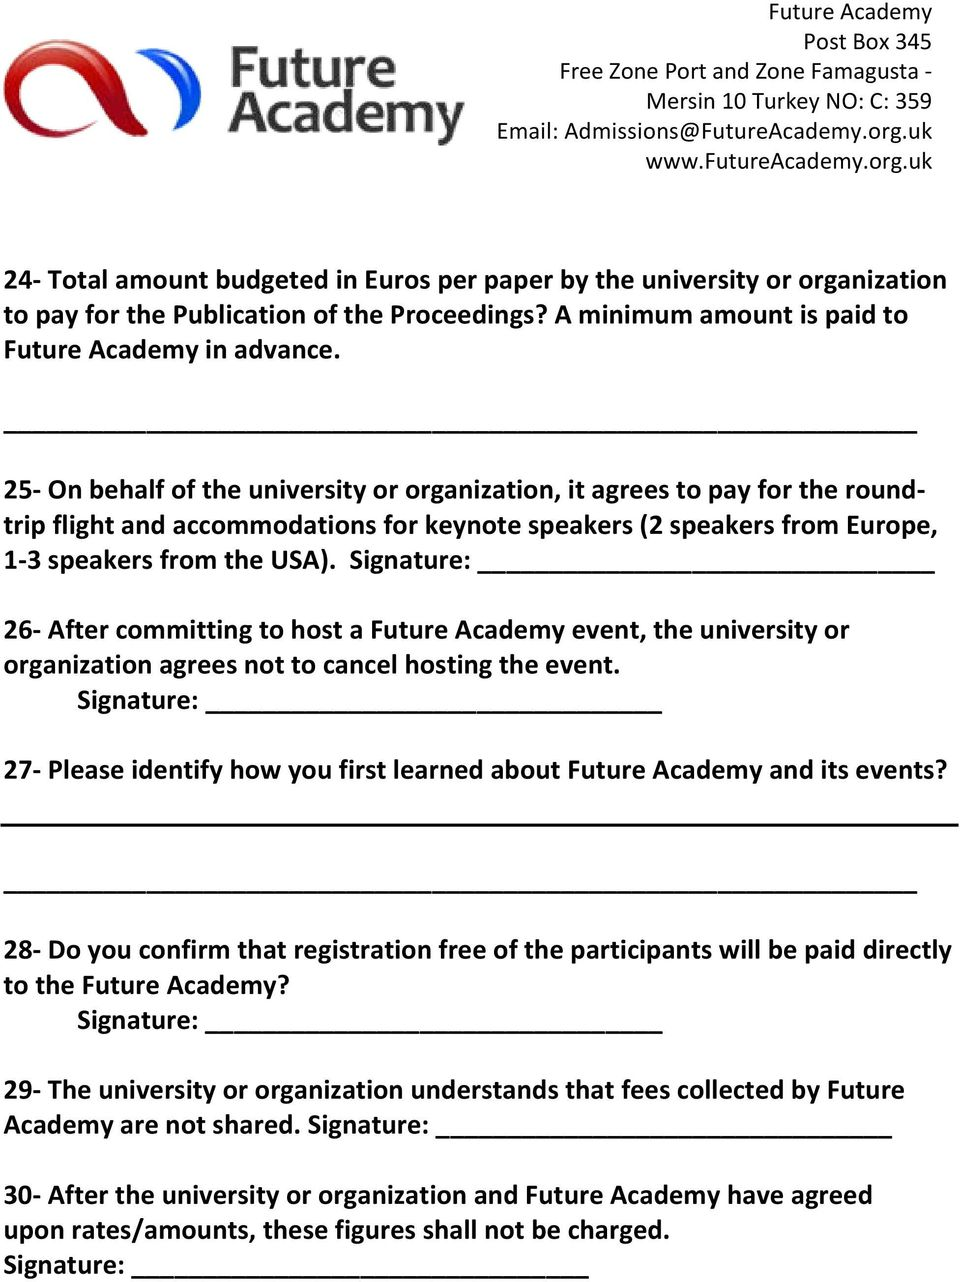 26- After committing to host a Future Academy event, the university or organization agrees not to cancel hosting the event.